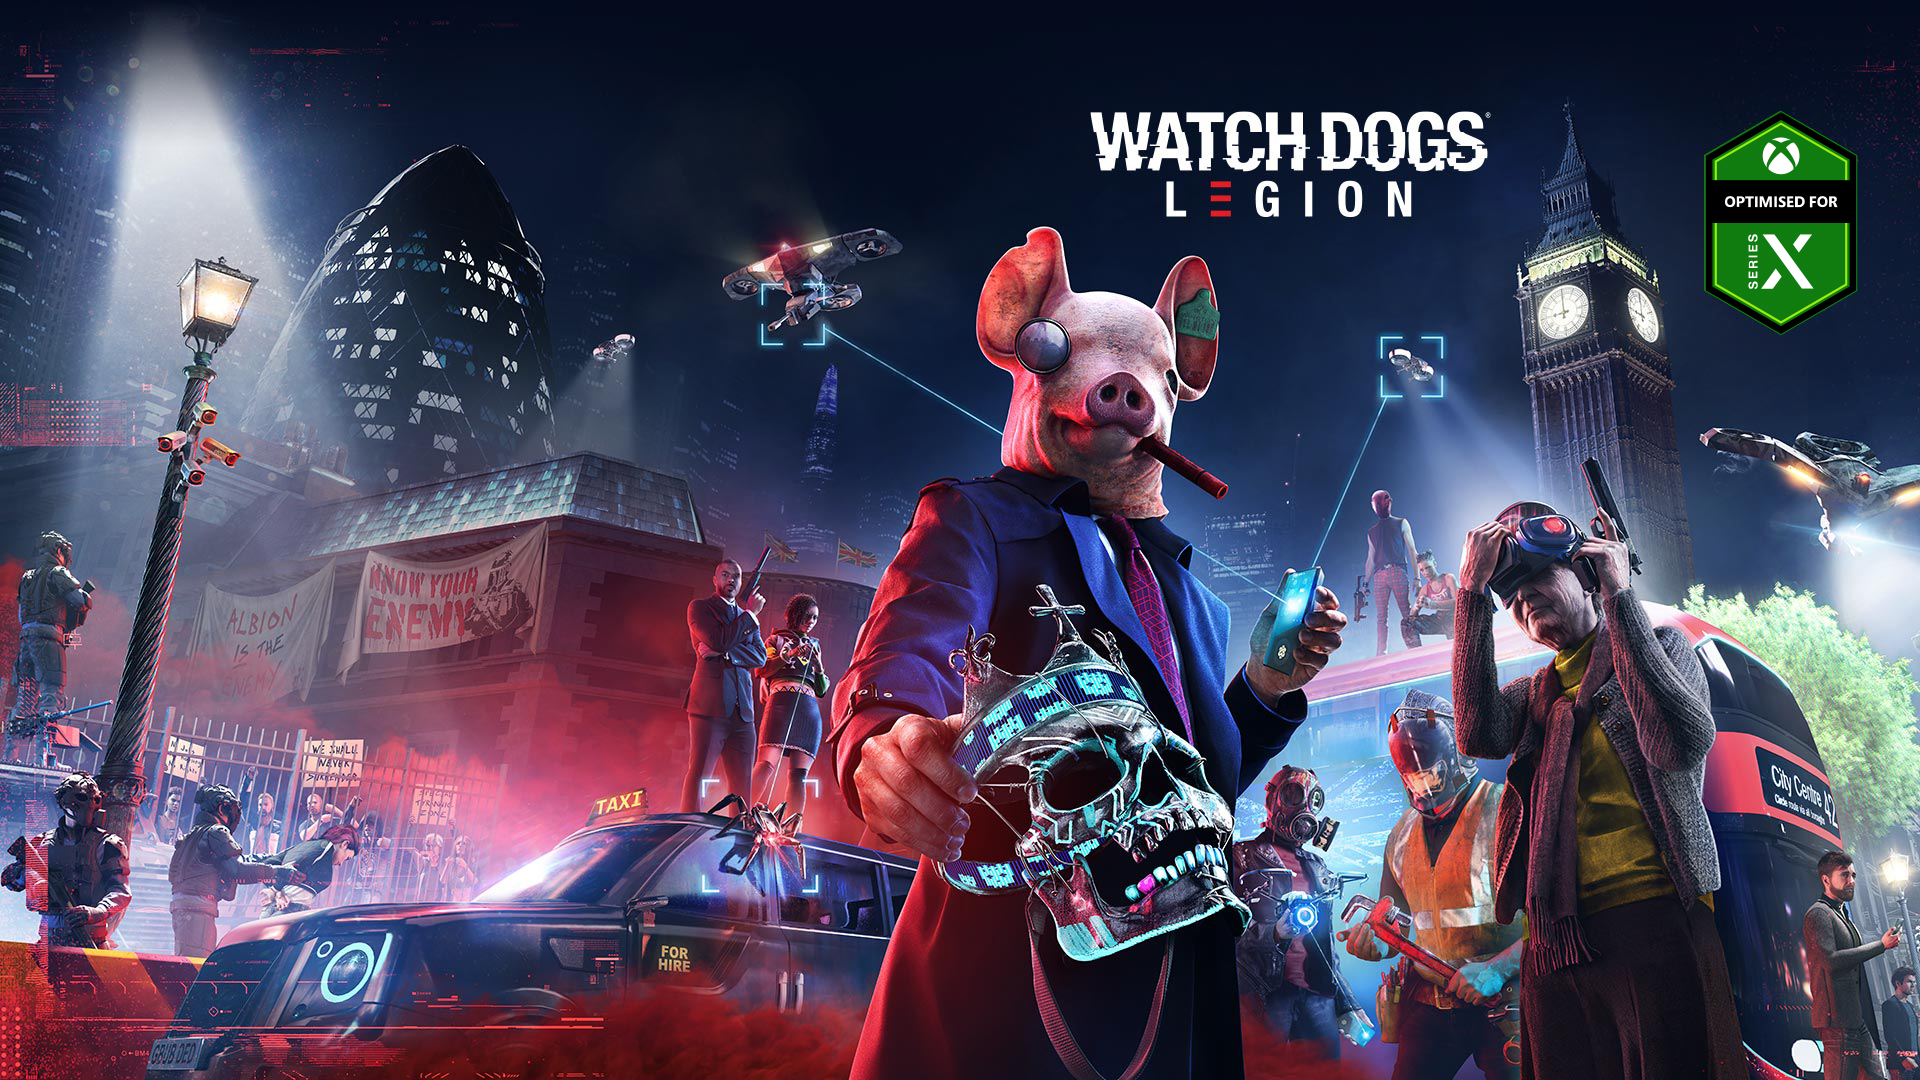 Optimised for Series X badge, Watch Dogs Legion logo, person in a pig mask holding a skull, two drones, Big Ben and several other characters with weapons